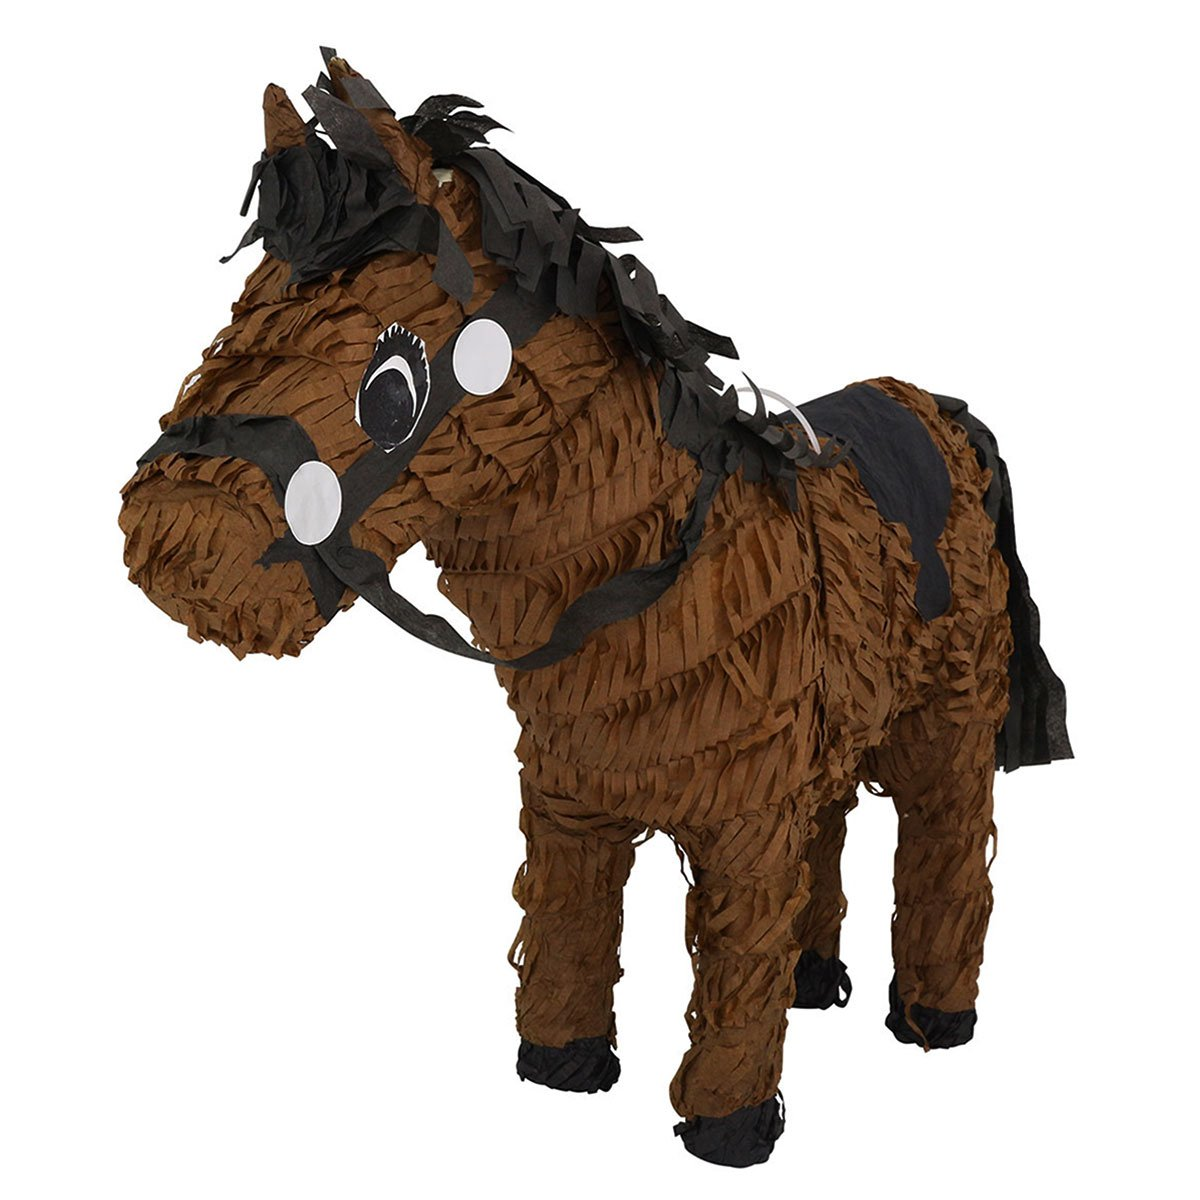 LYTIO – Pinata Dark Brown Horse Full Body with Black Details – Piñata - Design for Desert/West and/or Animal Theme Parties, Décor, Photo Prop, Center Piece.